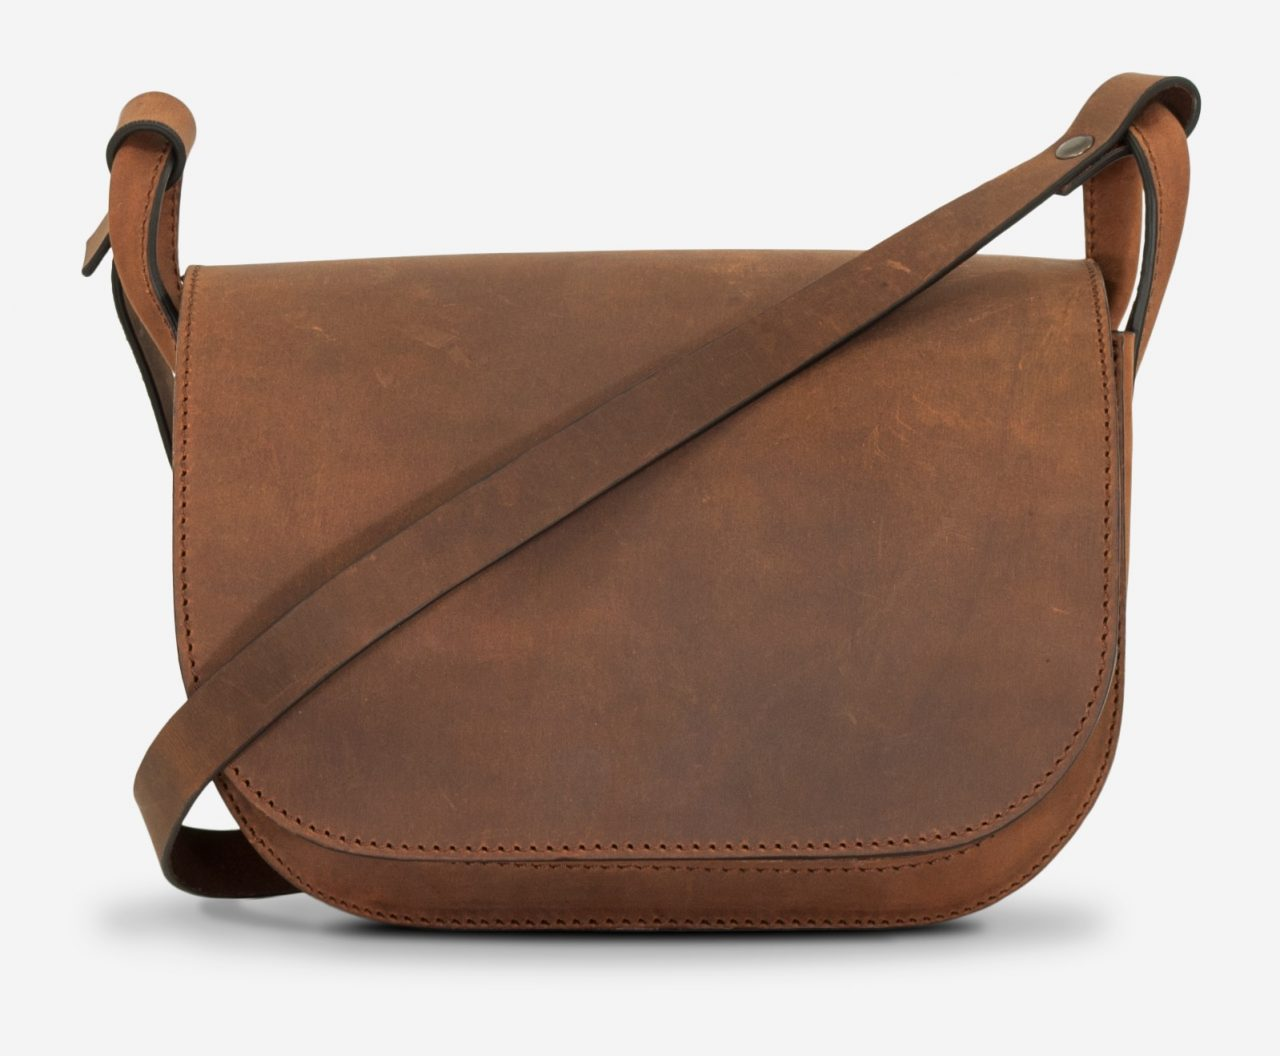 Front view of the handmade brown leather shoulder bag for women.